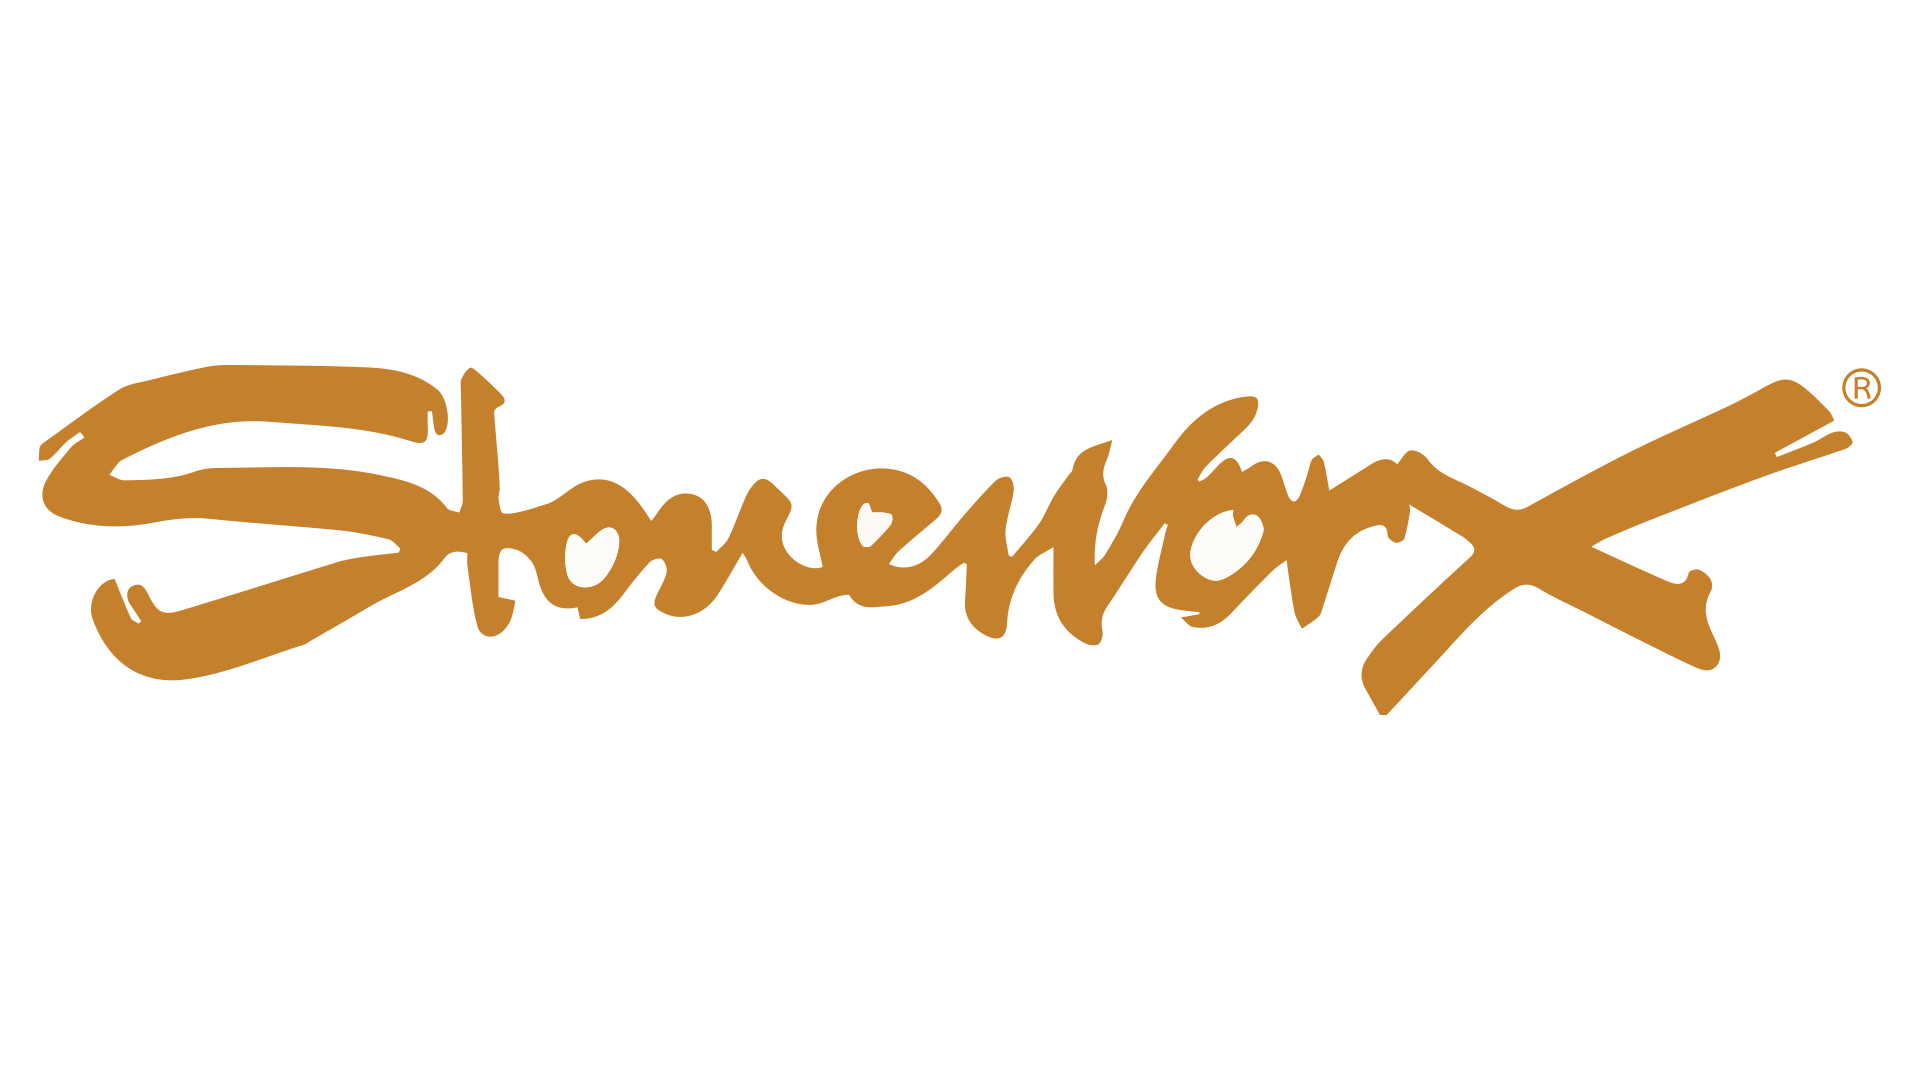 Stoneworkx-Logo-HiResPNG.png